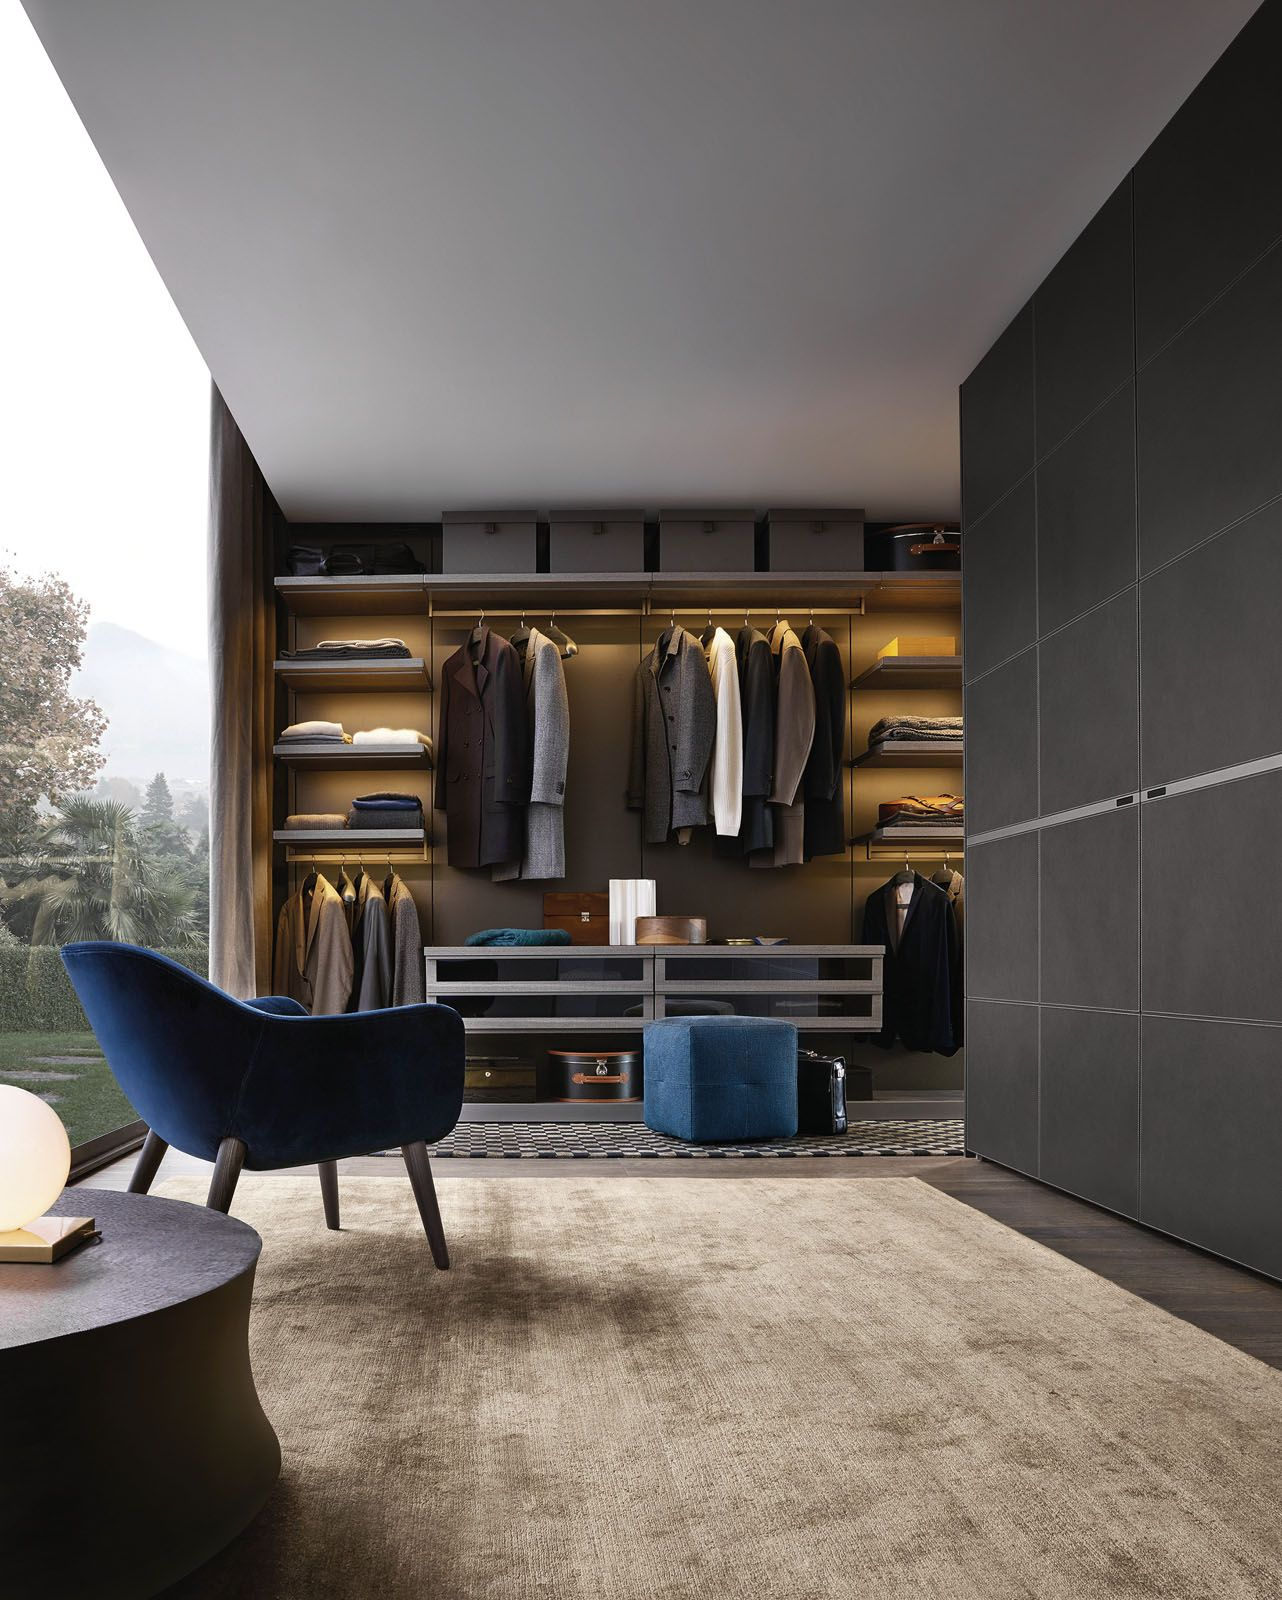 Poliform Ubik walk-in wardrobe, from Space Furniture